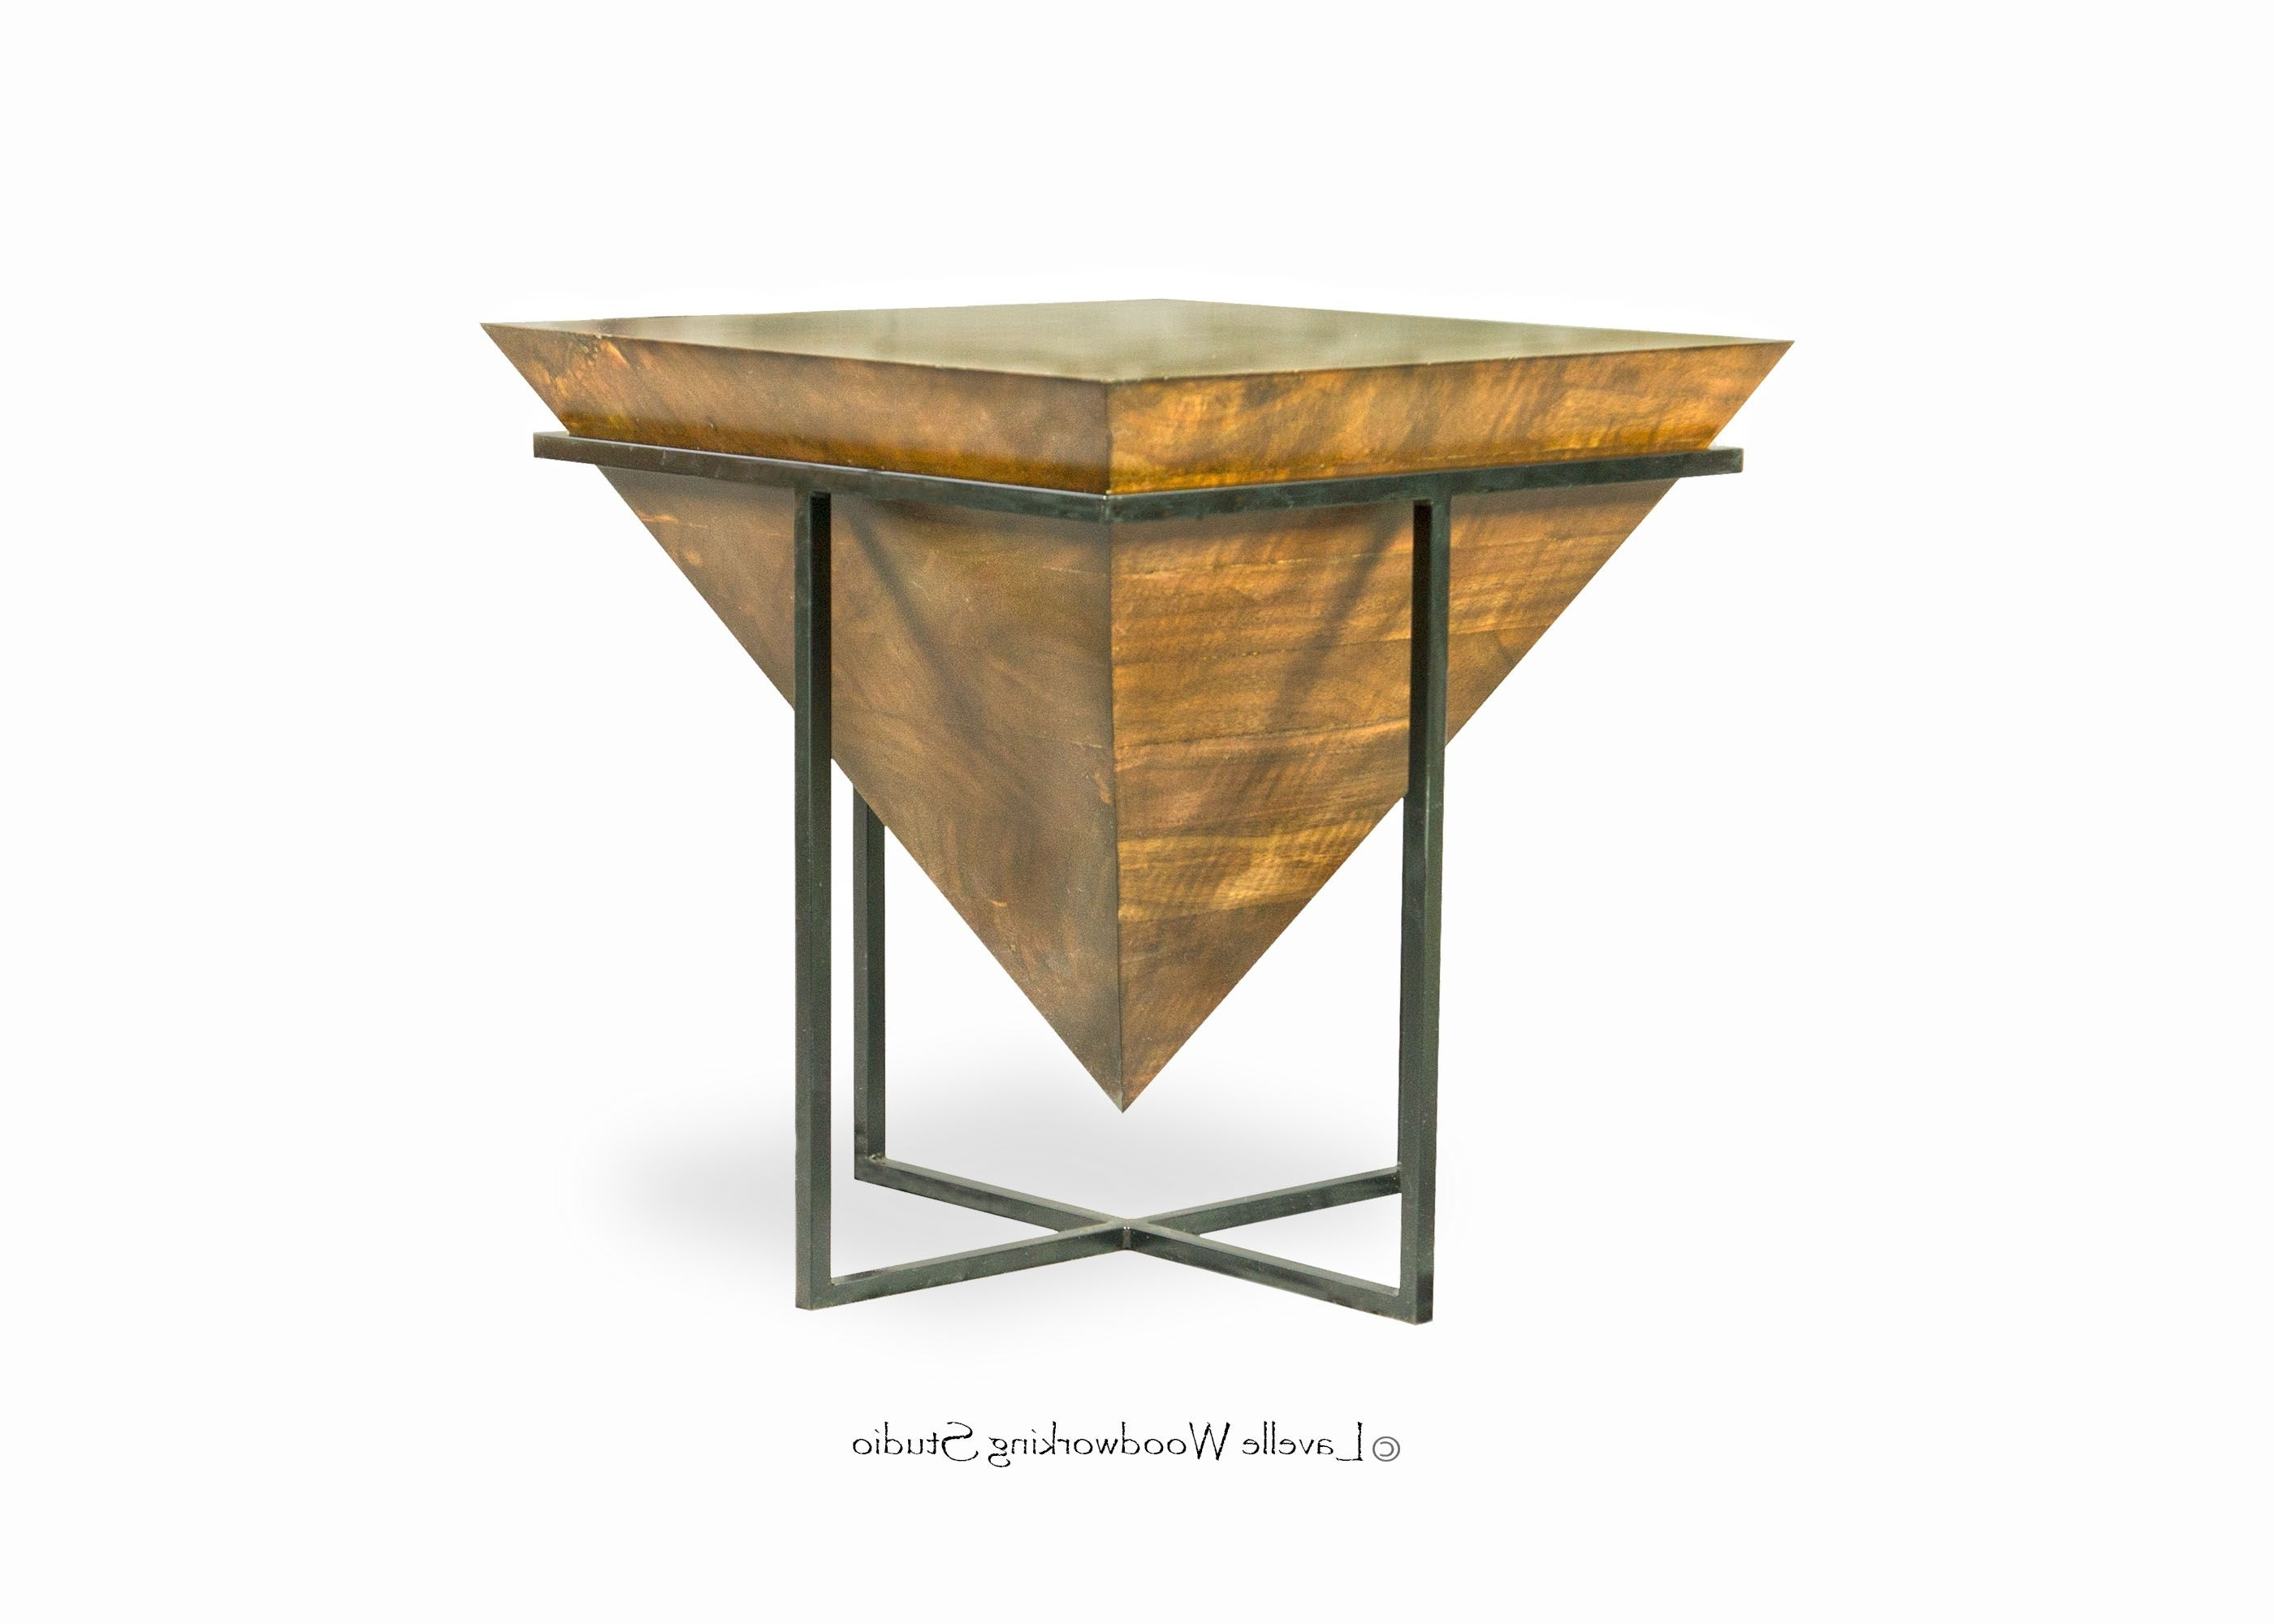 Newest Inverted Triangle Coffee Tables Intended For Hand Made Mara Table Inverted Wood Pyramid With Metal Base (View 3 of 20)